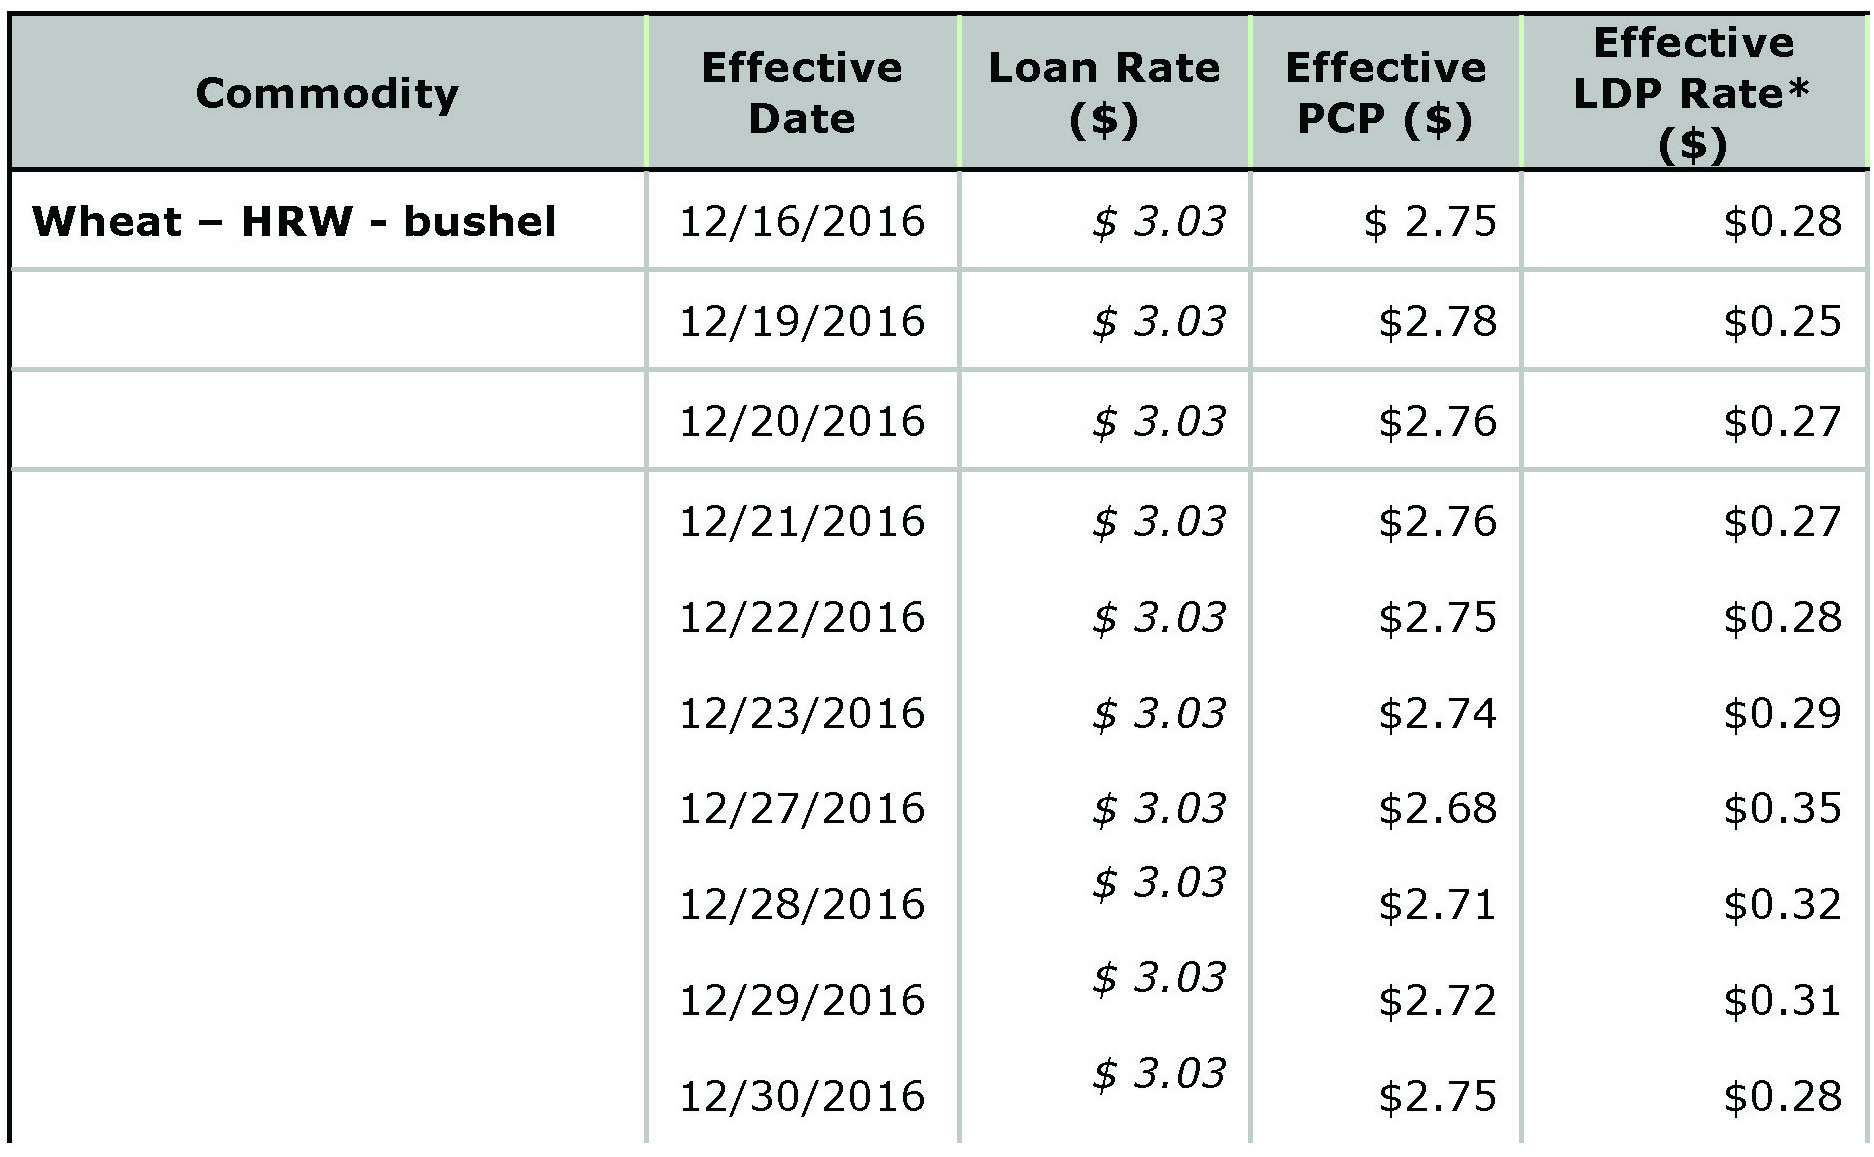 USDA Loan Deficiency Payment - January 2, 2017 - wheat